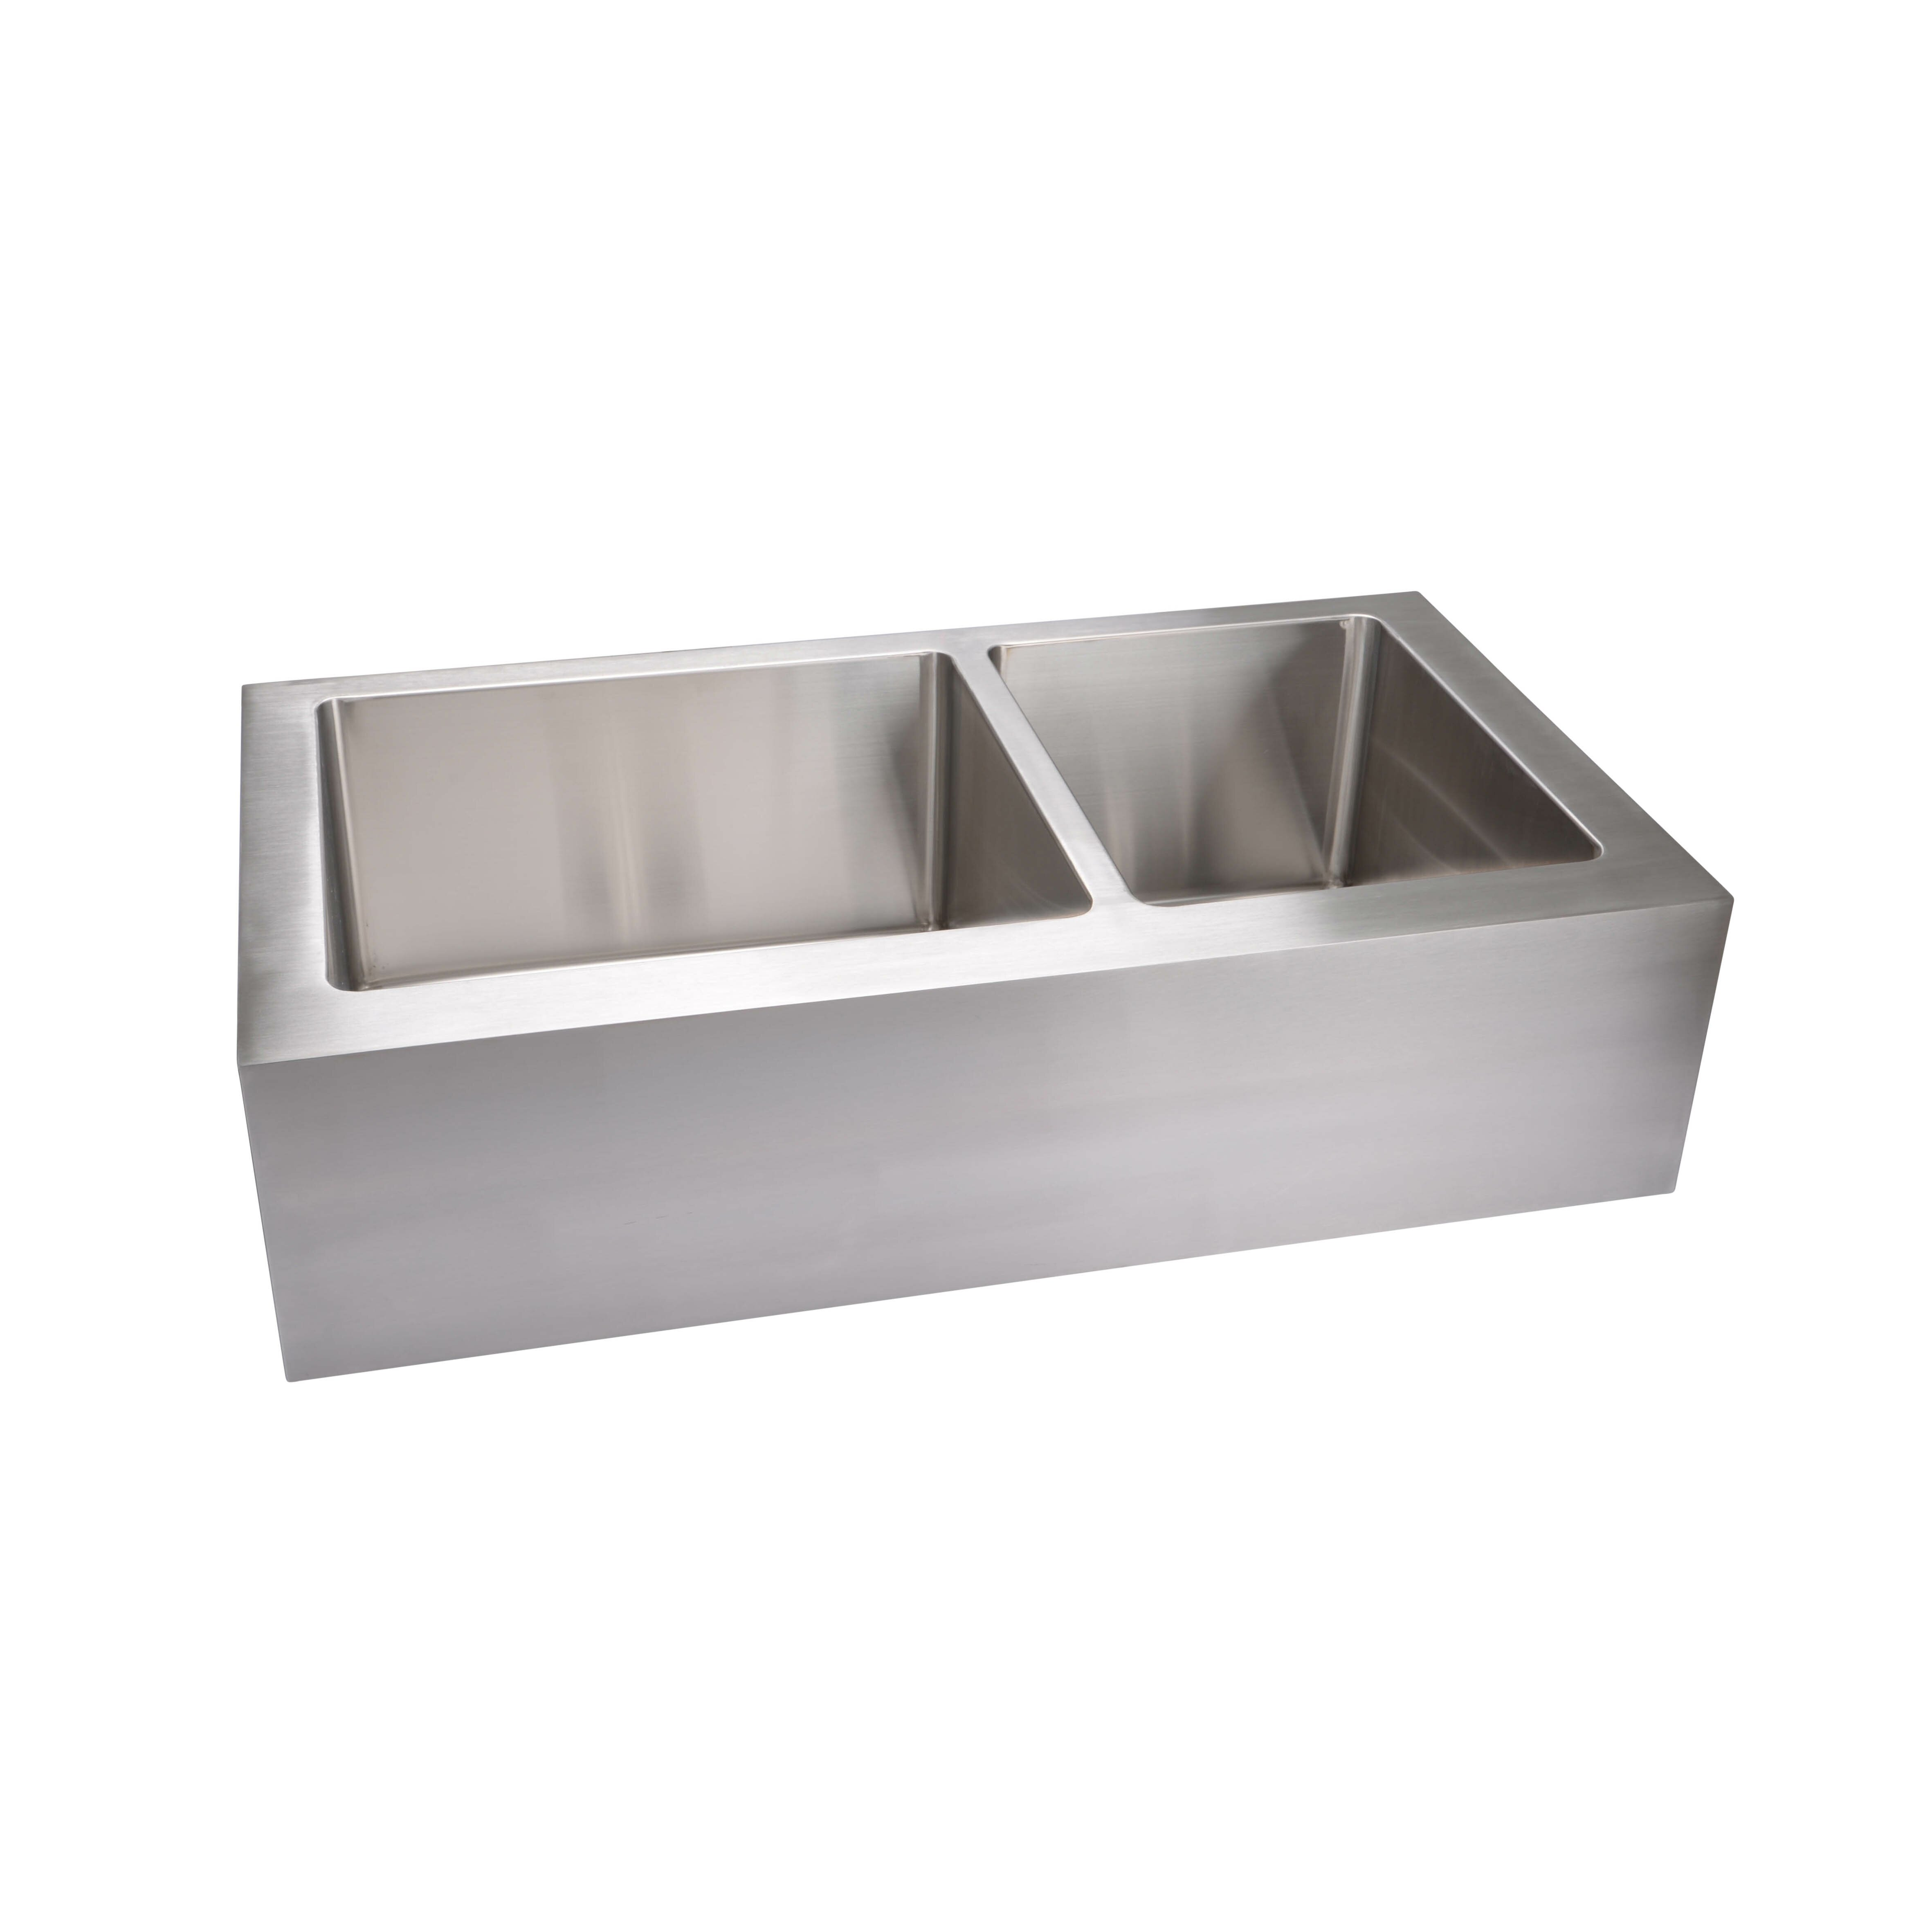 "Hahn Notched Farmhouse Kitchen Sink: 35.88"" X 20.75"" Extra Large Stainless Steel Flat Front"